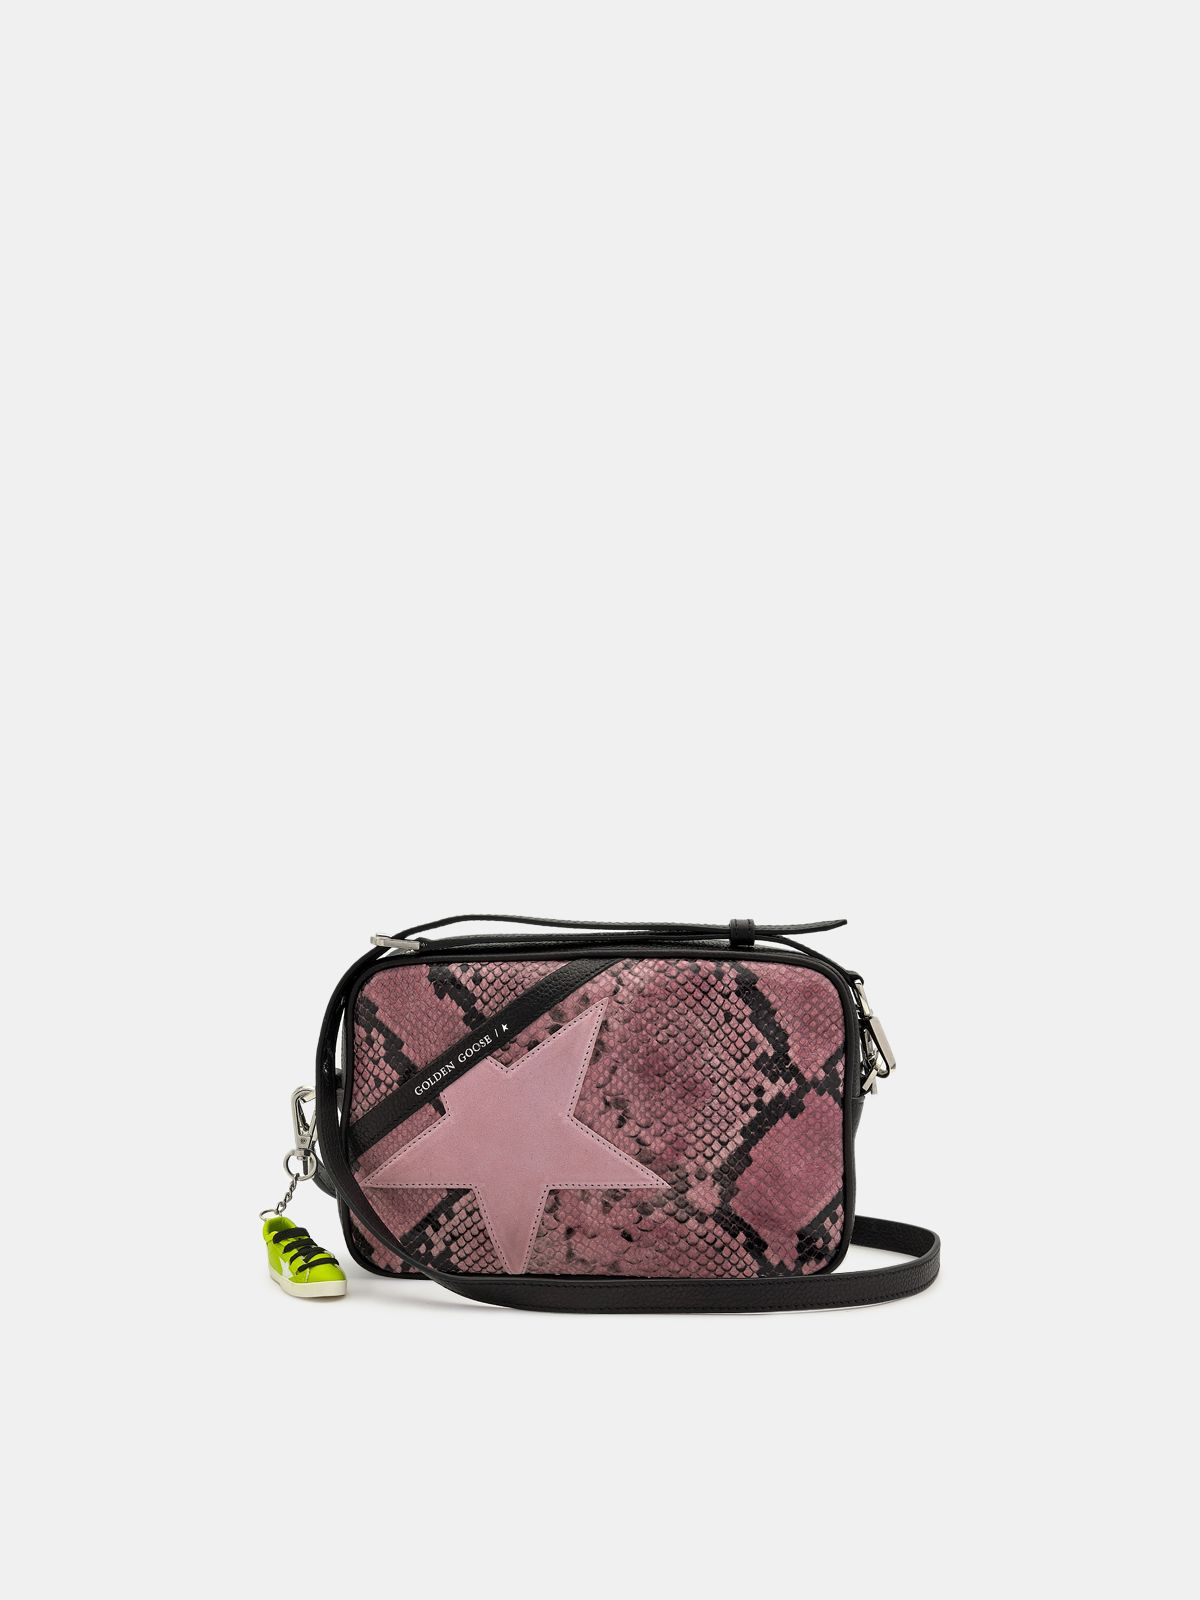 Sac Star Bag en cuir à imprimé python rose